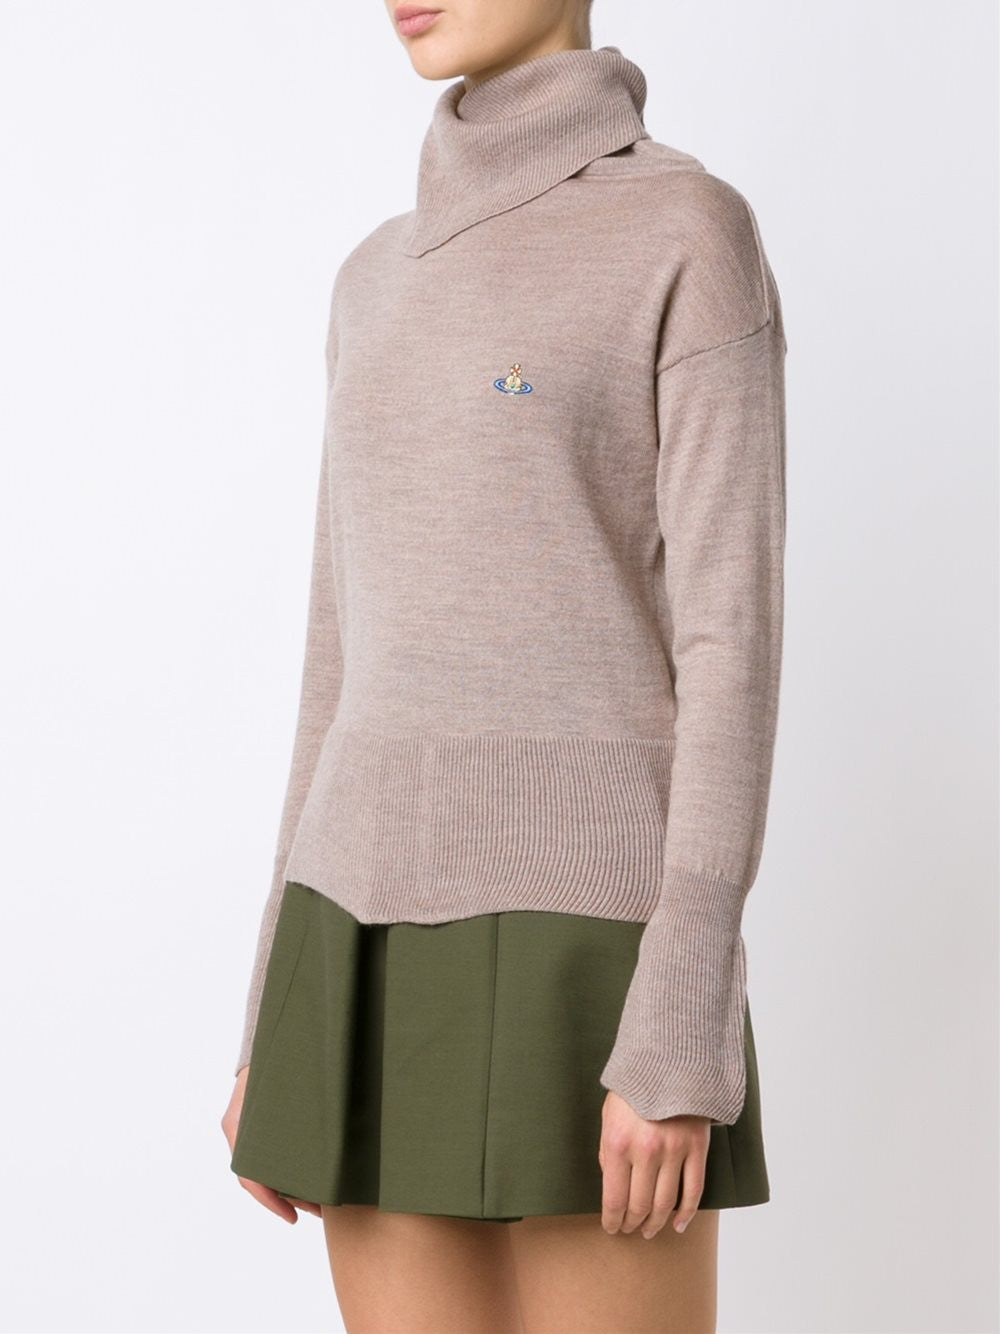 Turtleneck Sweater | S26HA0342 S13141